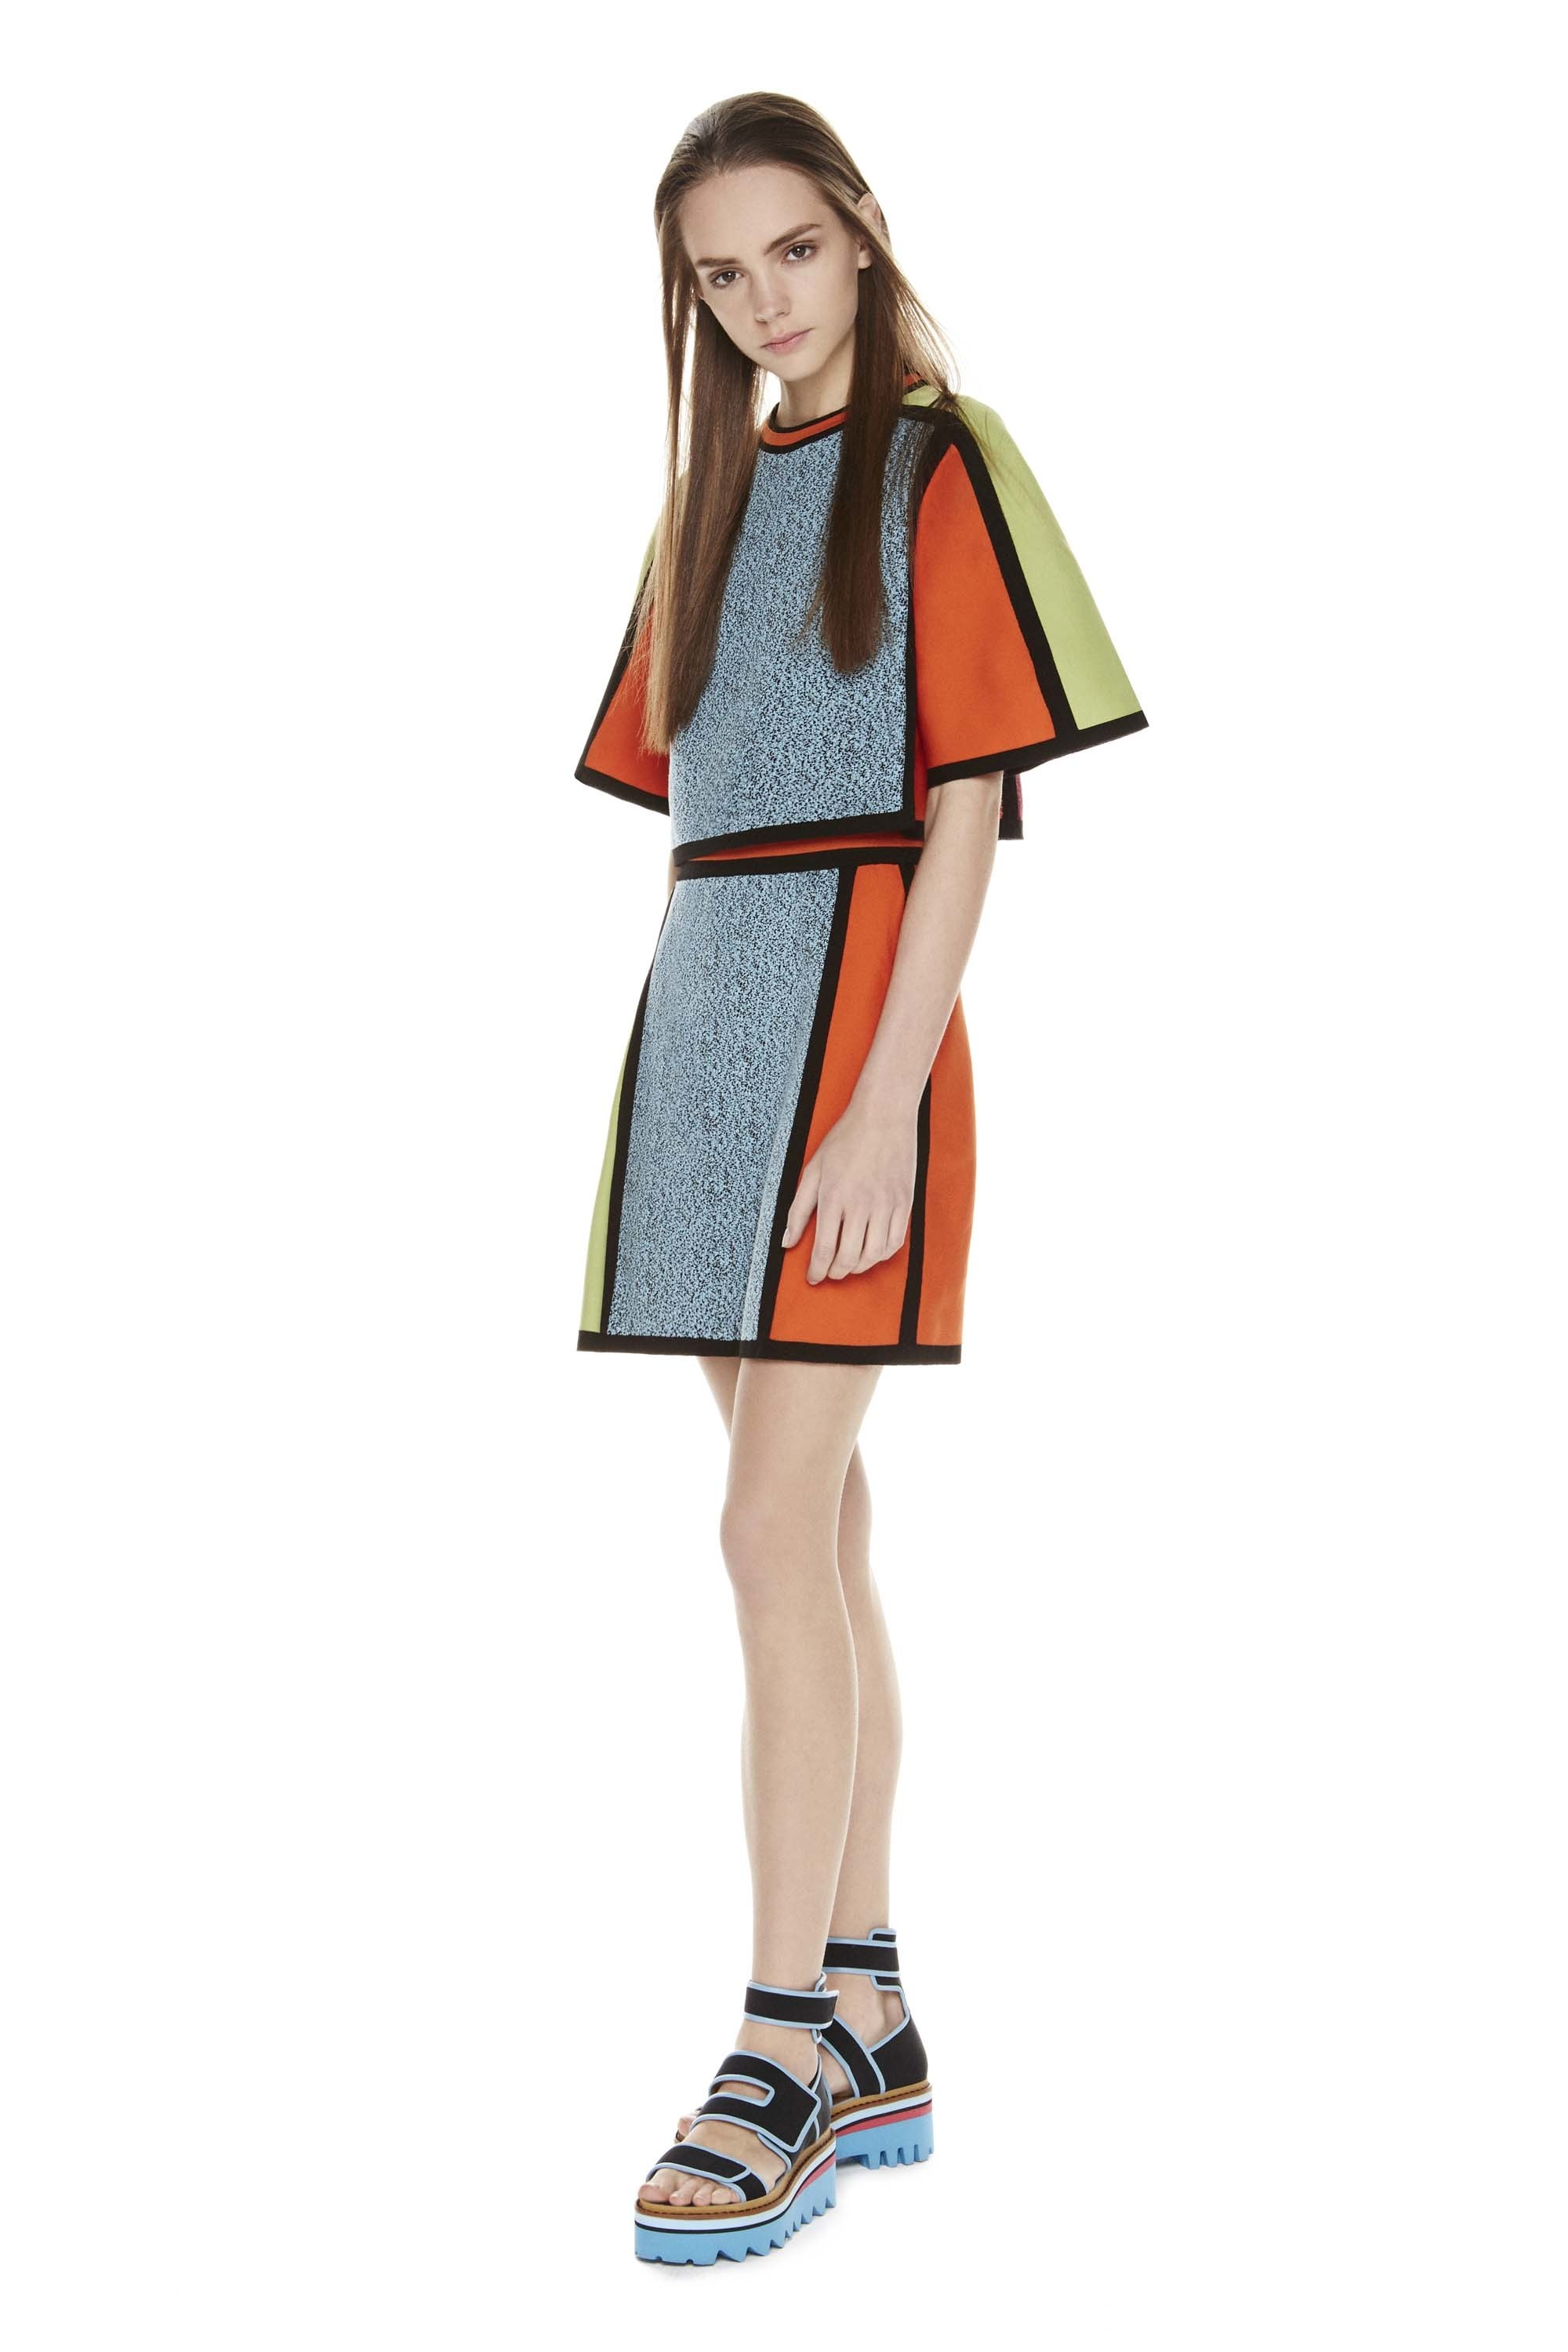 27-m-missoni-resort-17.jpg